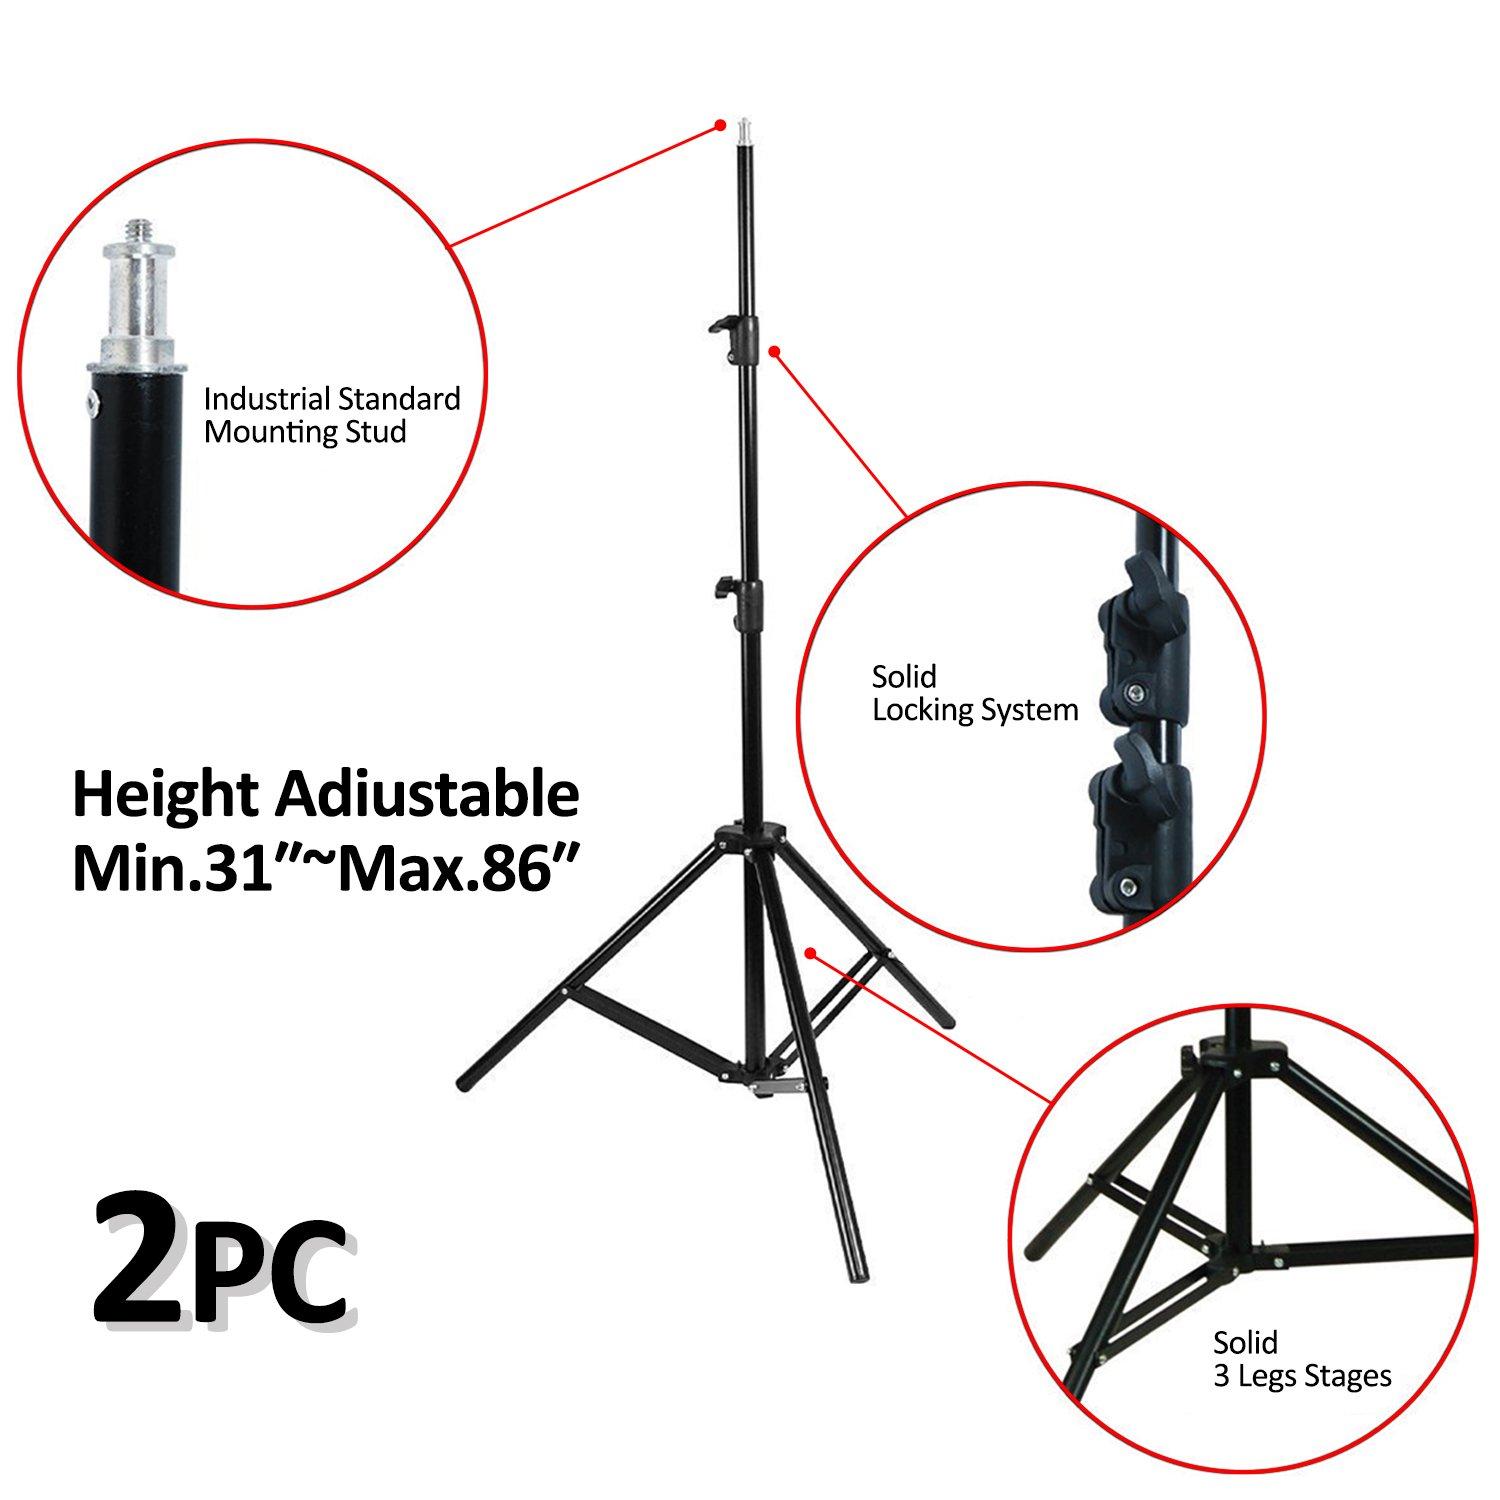 VILTROX 2-Pack VL-200 3300K-5600K CRI95 Super Slim LED Video Light Panel Photography Lighting Kit with Light Stand, Hot Shoe Adapter, Remote Controller, AC Adapter for YouTube Studio Video Shooting by VILTROX (Image #6)